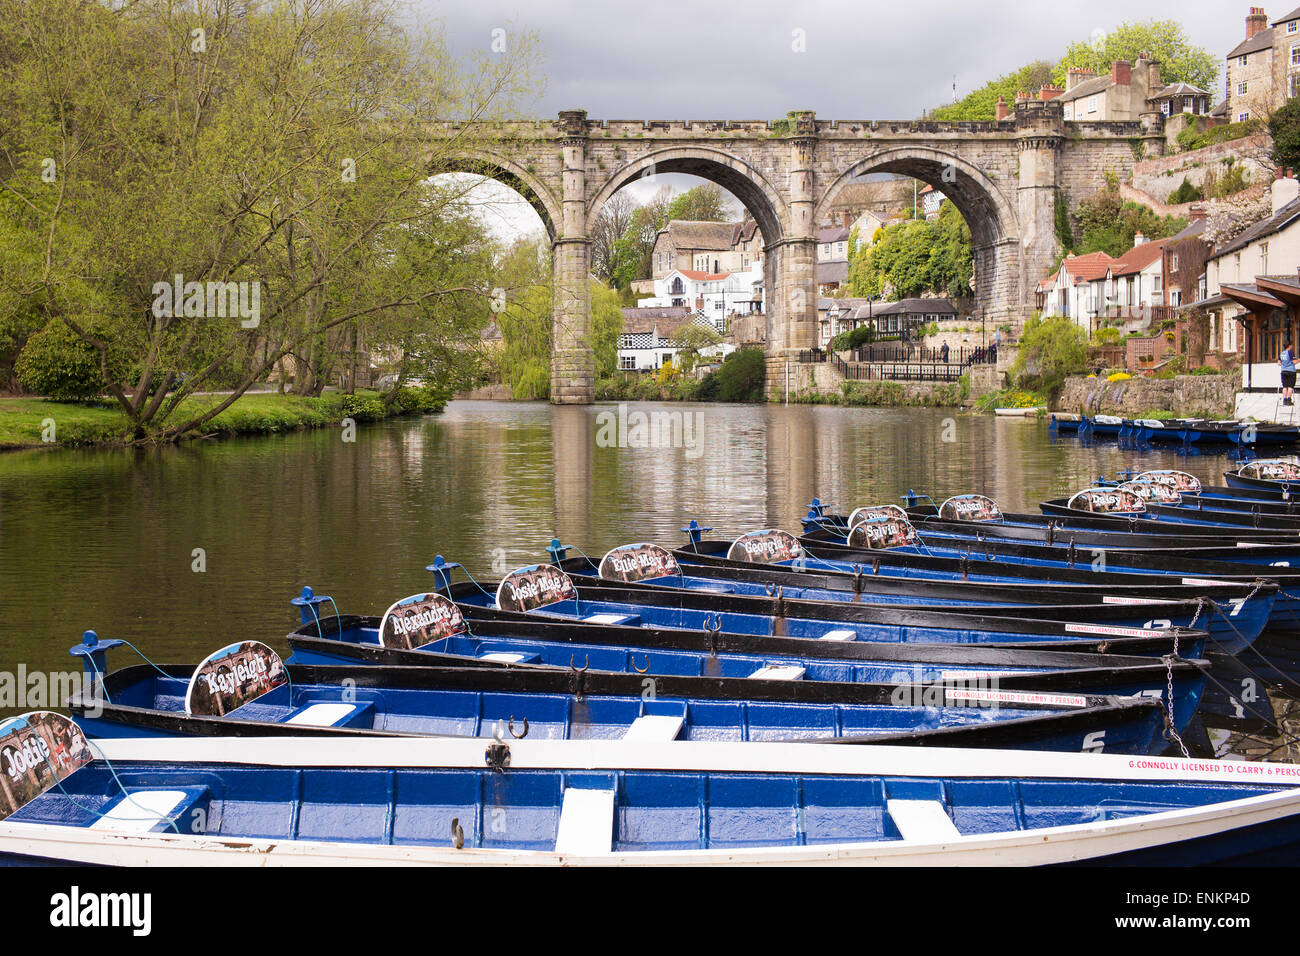 Rowing boats lined-up and ready for visitors to Knaresborough, North Yorkshire, England - Stock Image